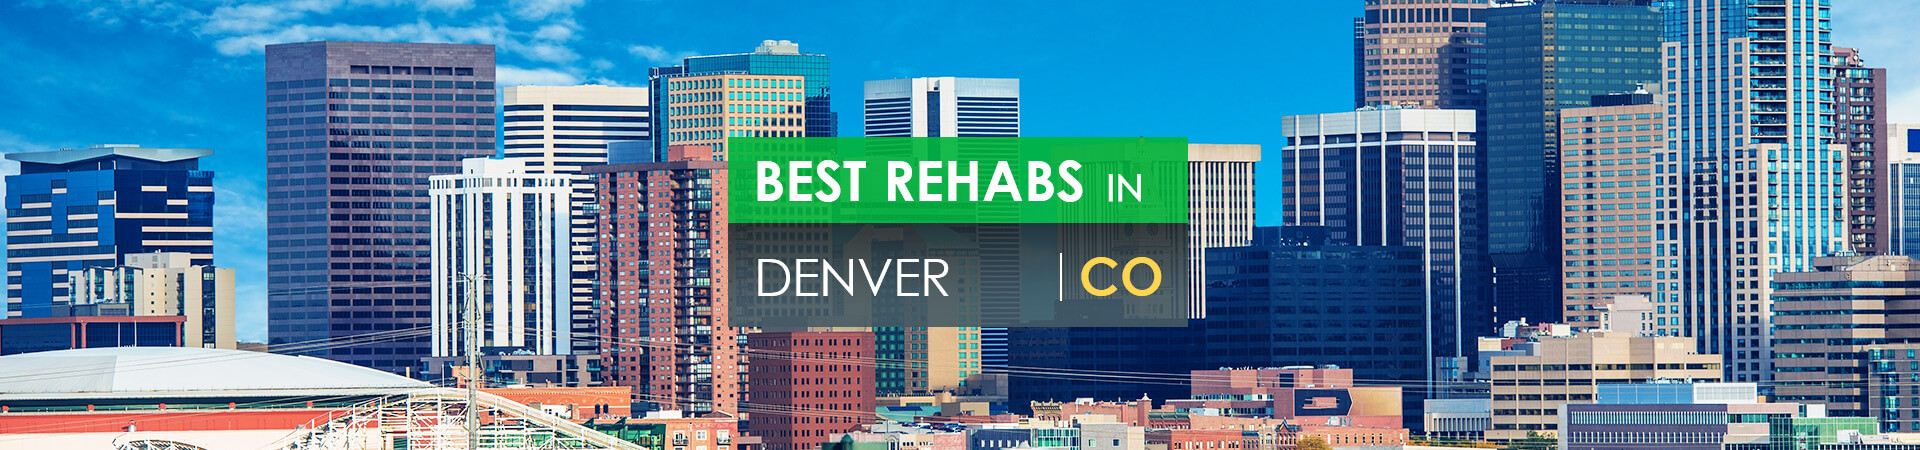 Best rehabs in Denver, CO